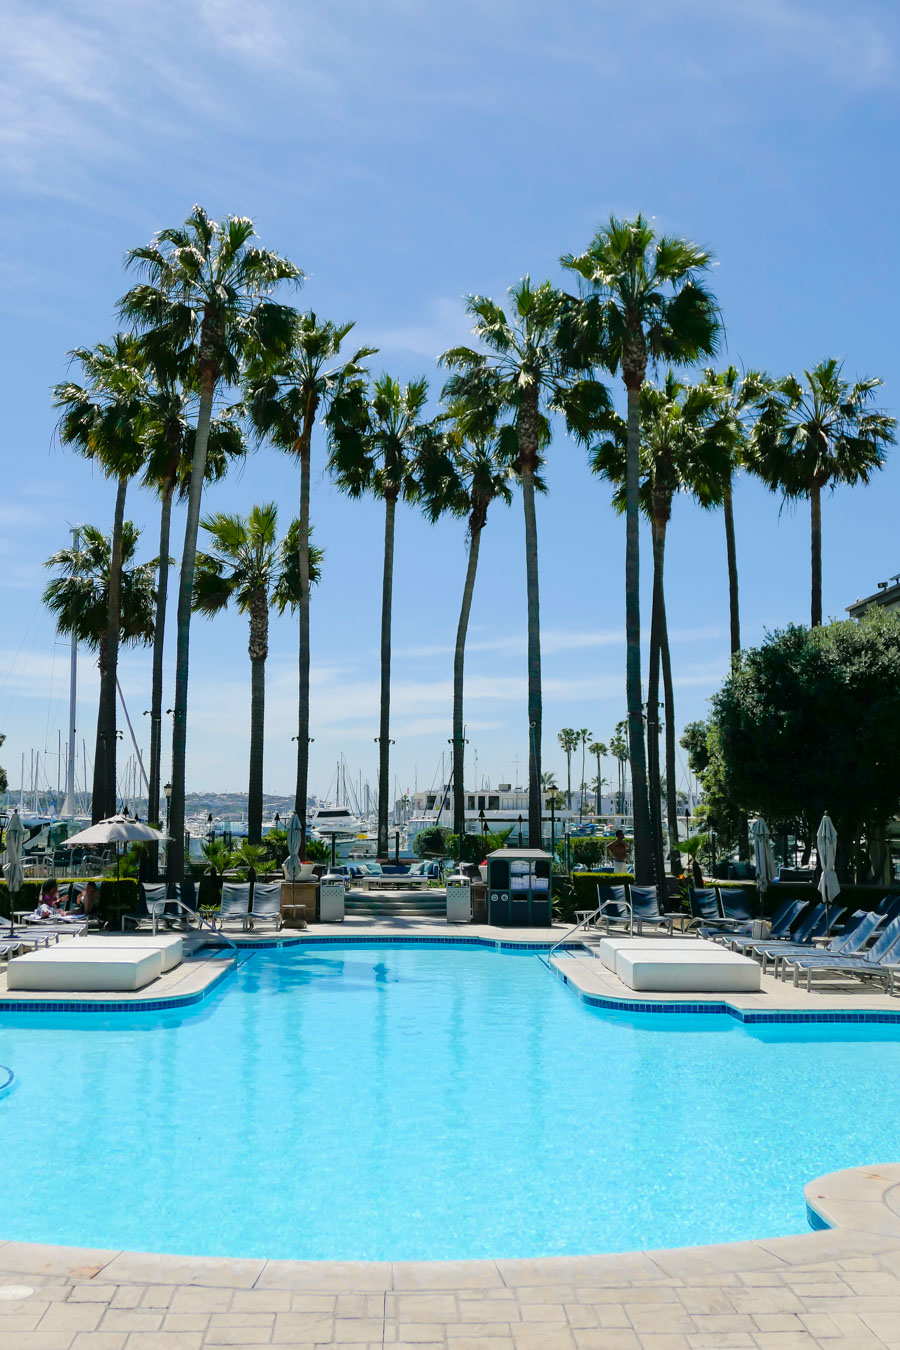 DayAxe Review - Luxury Hotel Day Access at Ritz Carlton Marina del Rey